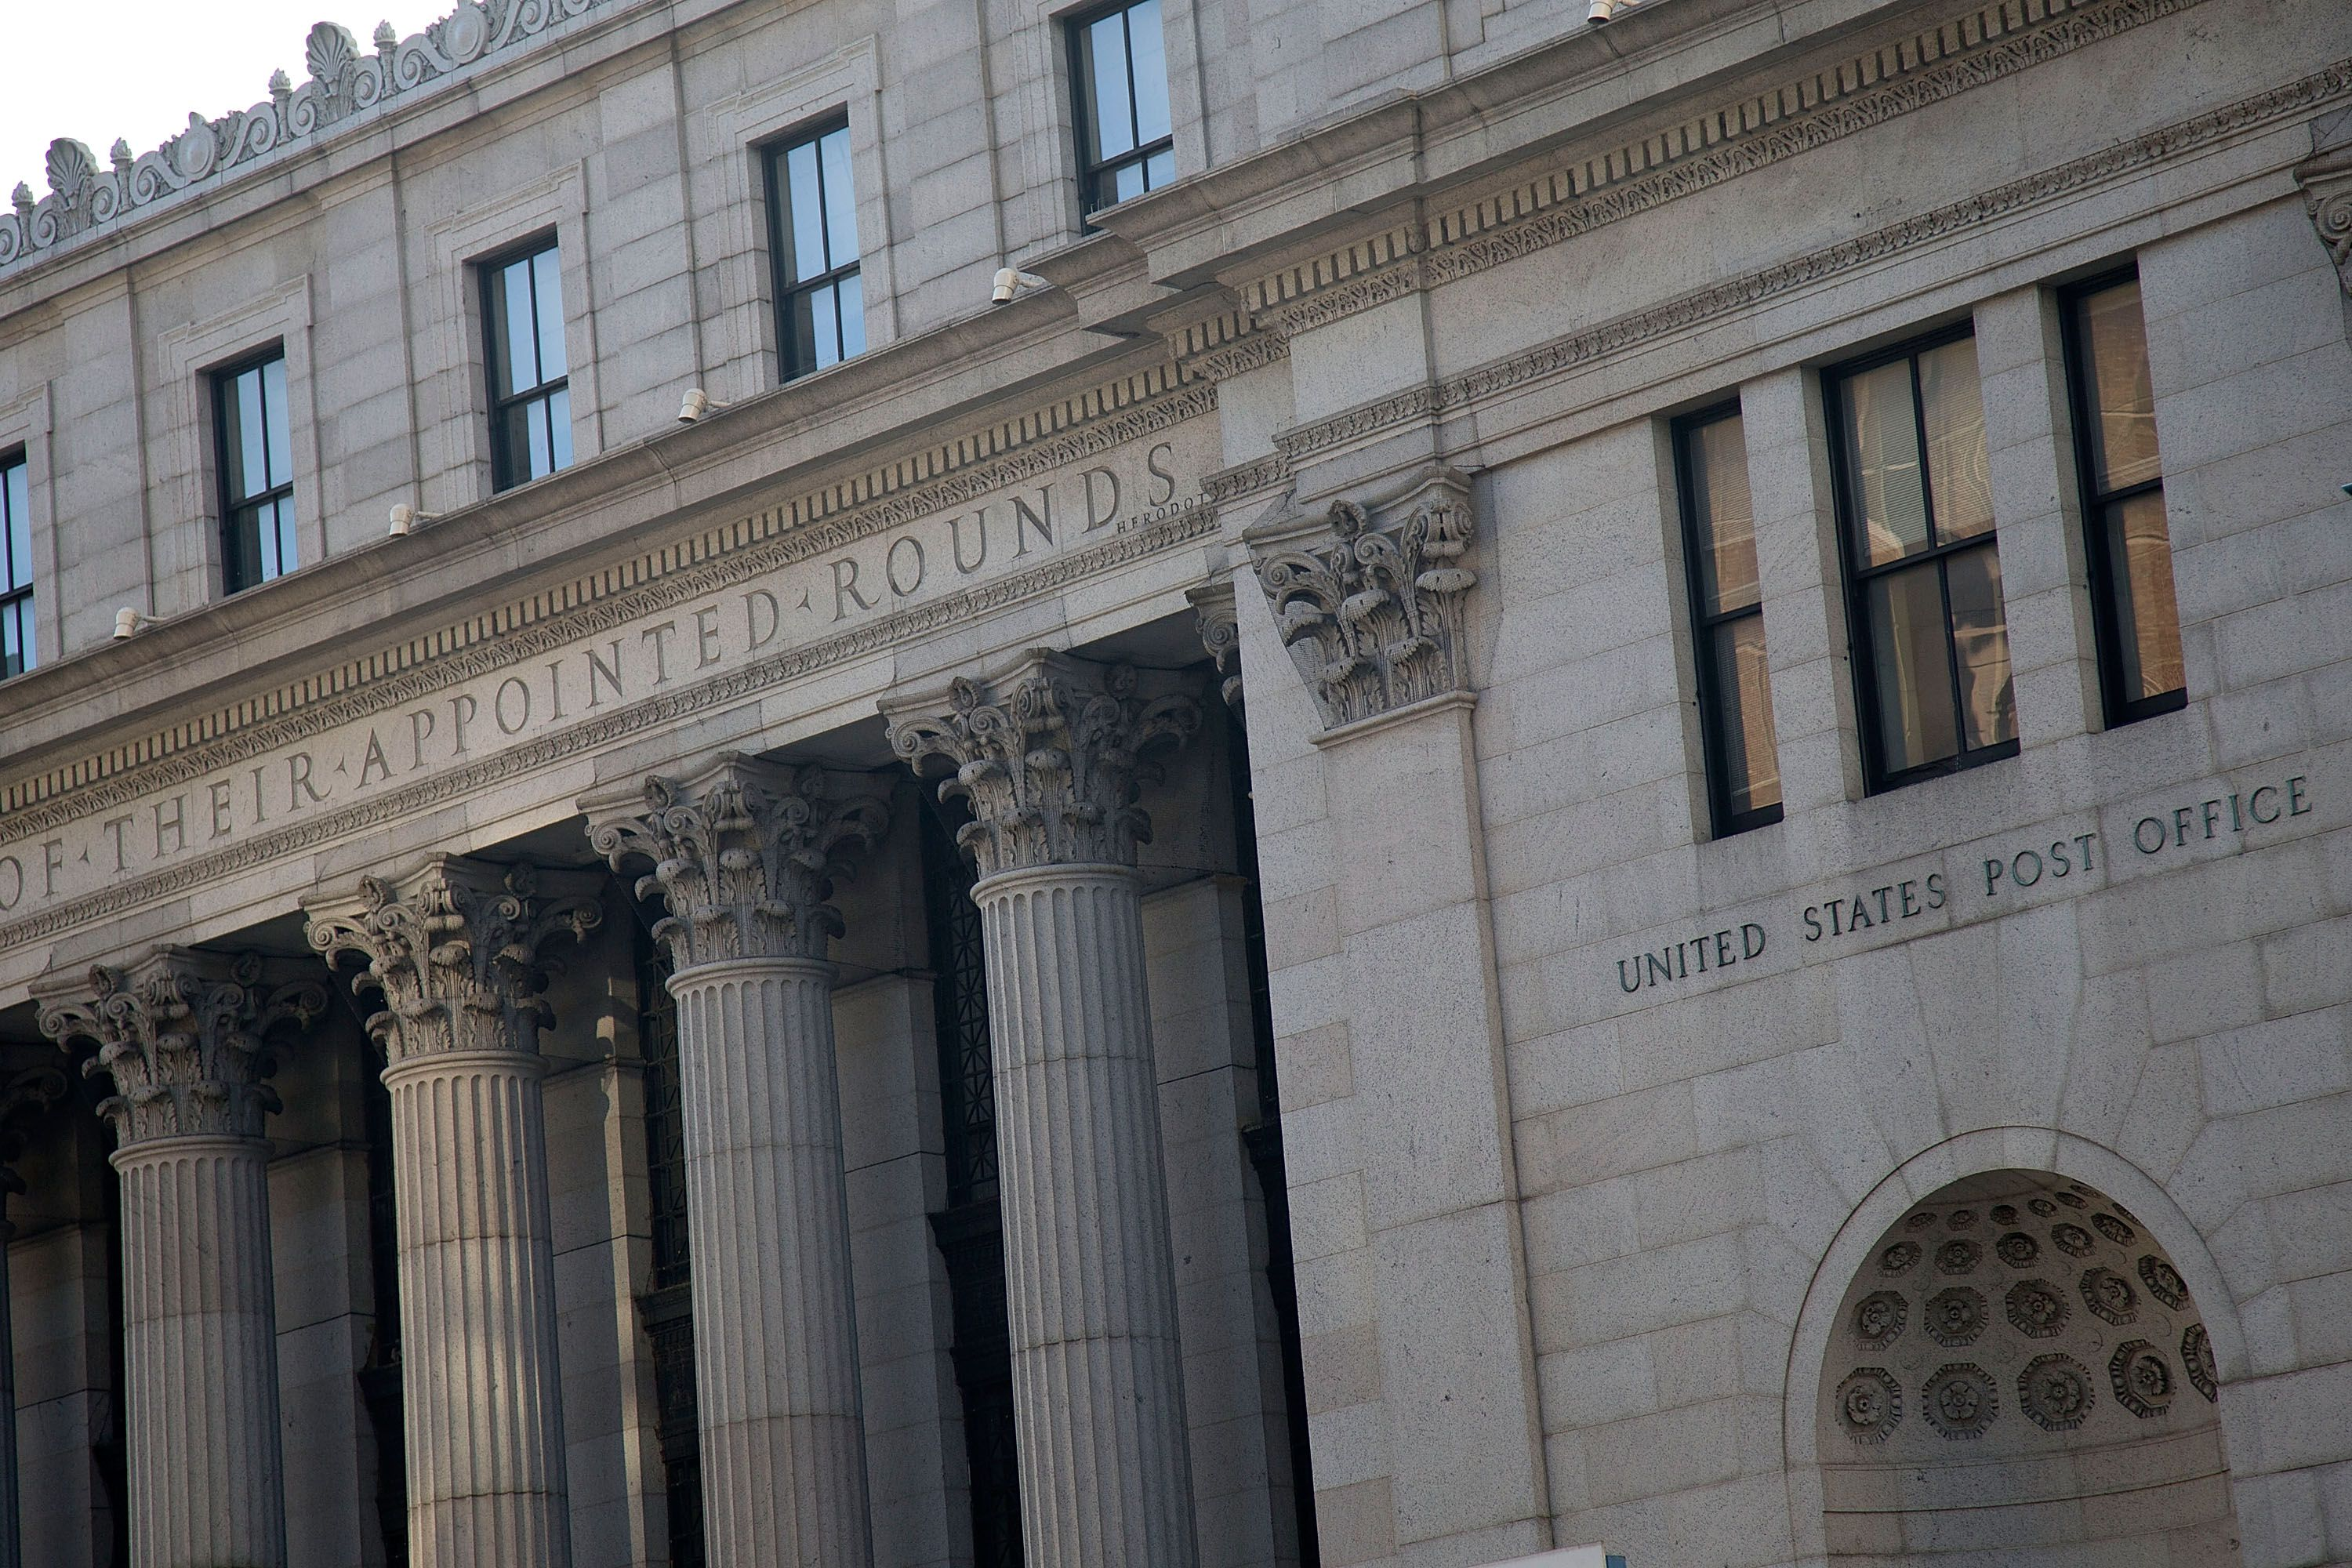 detail facade with inscription of their appointed rounds carved above columns, united states post office to the right of pilaster